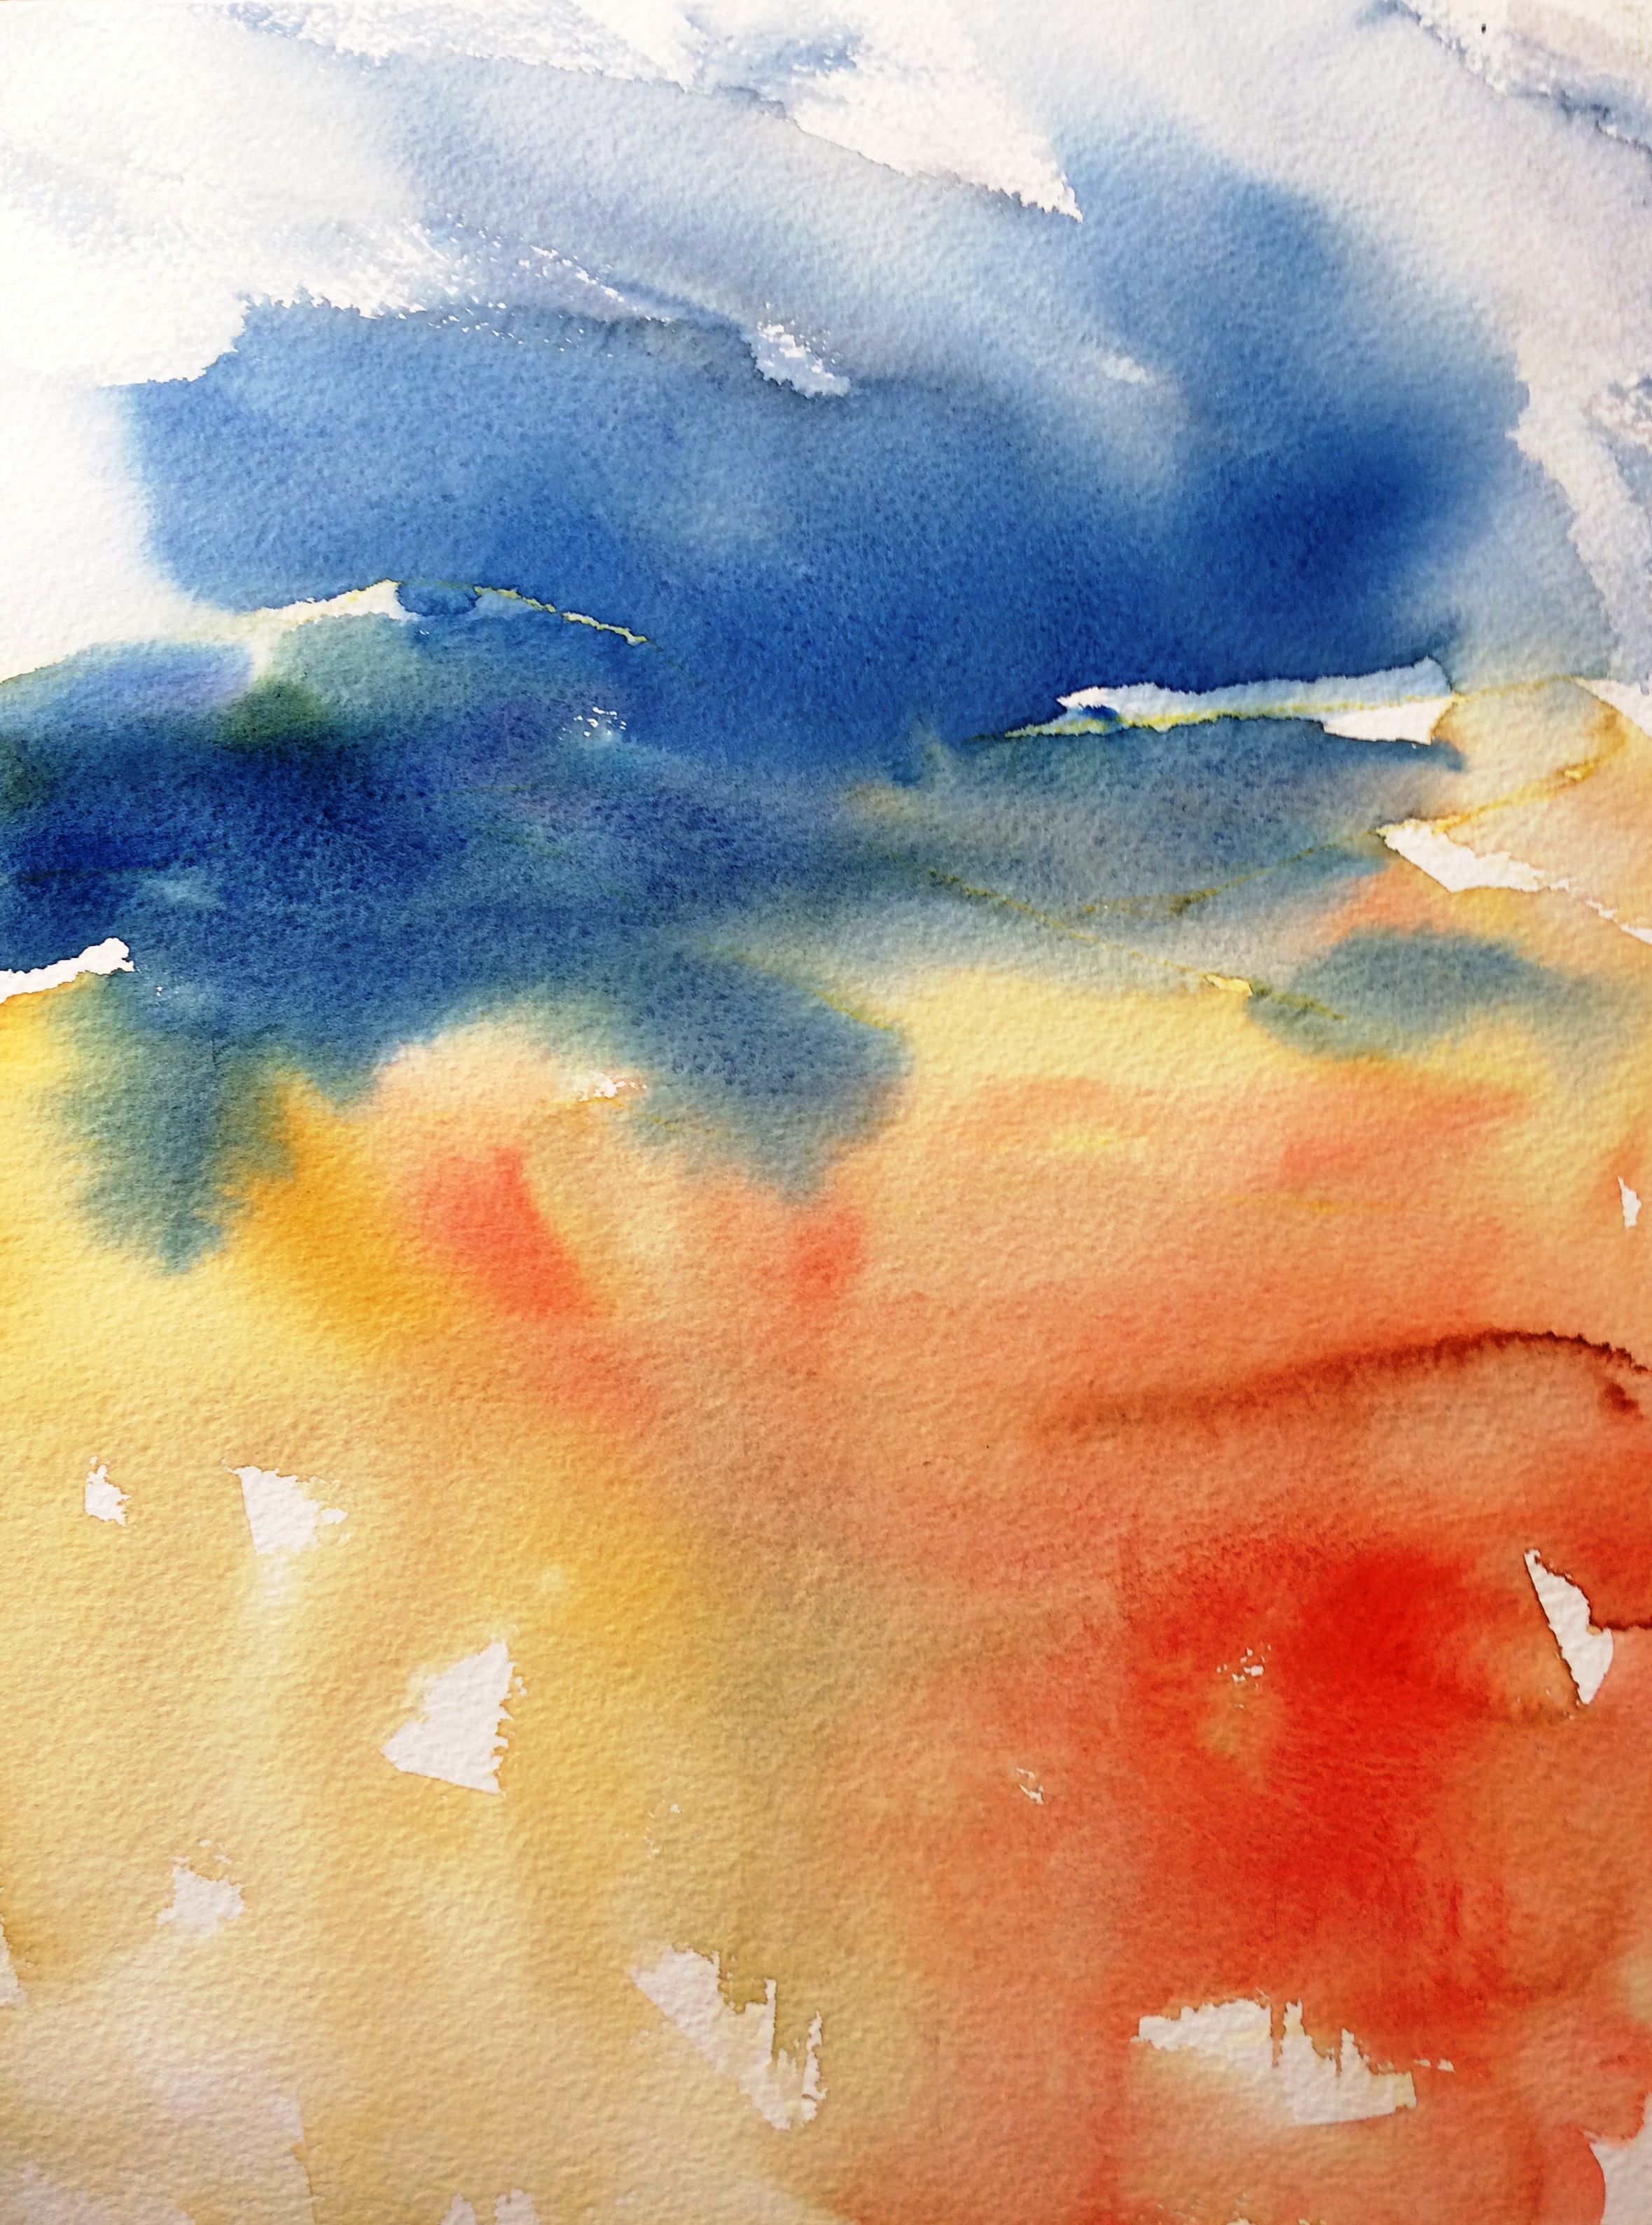 Watercolour painting, 'Autumn breeze'